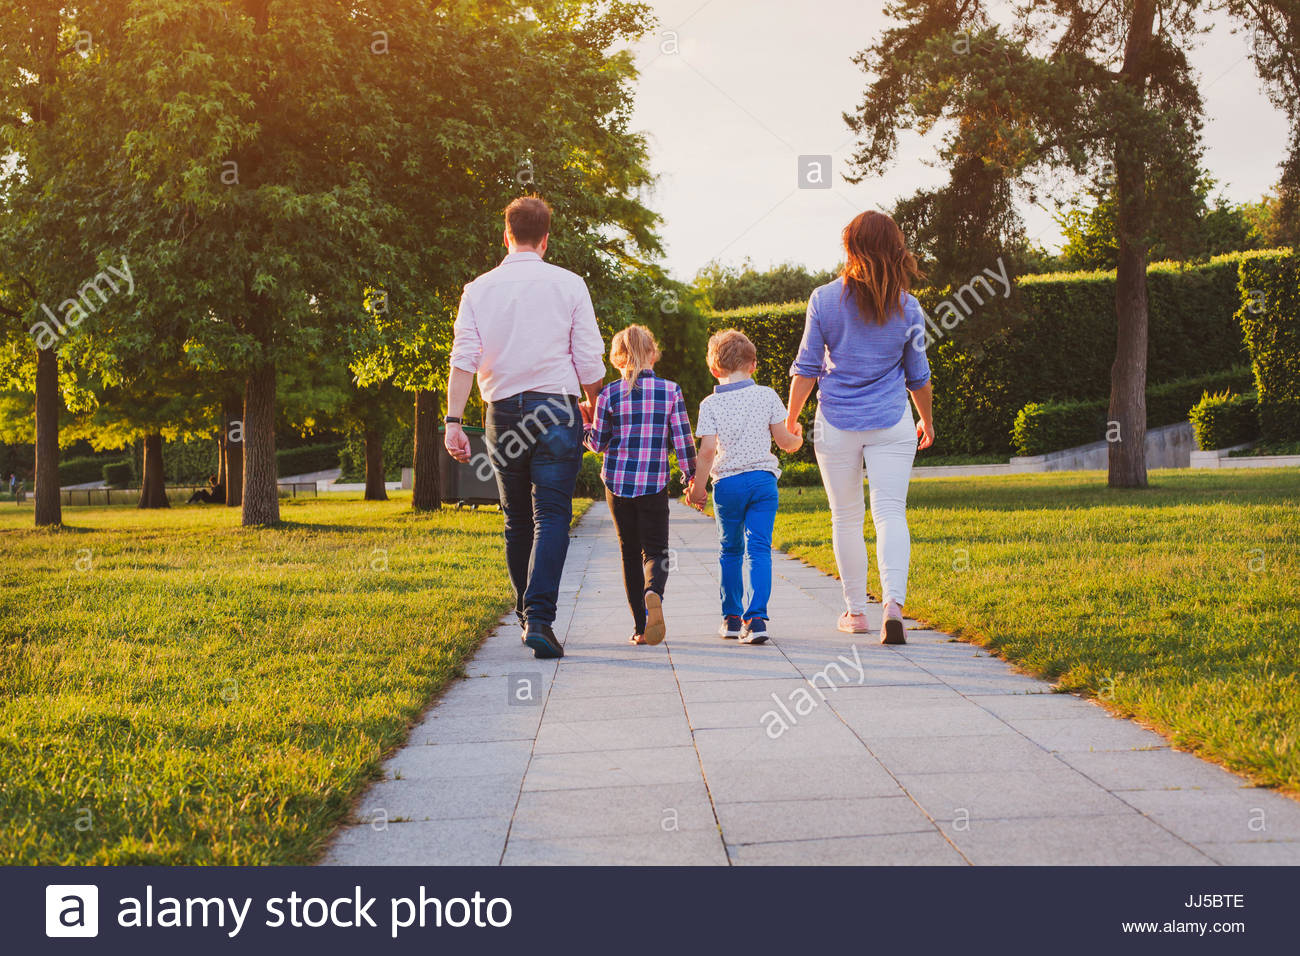 family with two kids walking in the park together at sunset, parents with children, view from the back - Stock Image